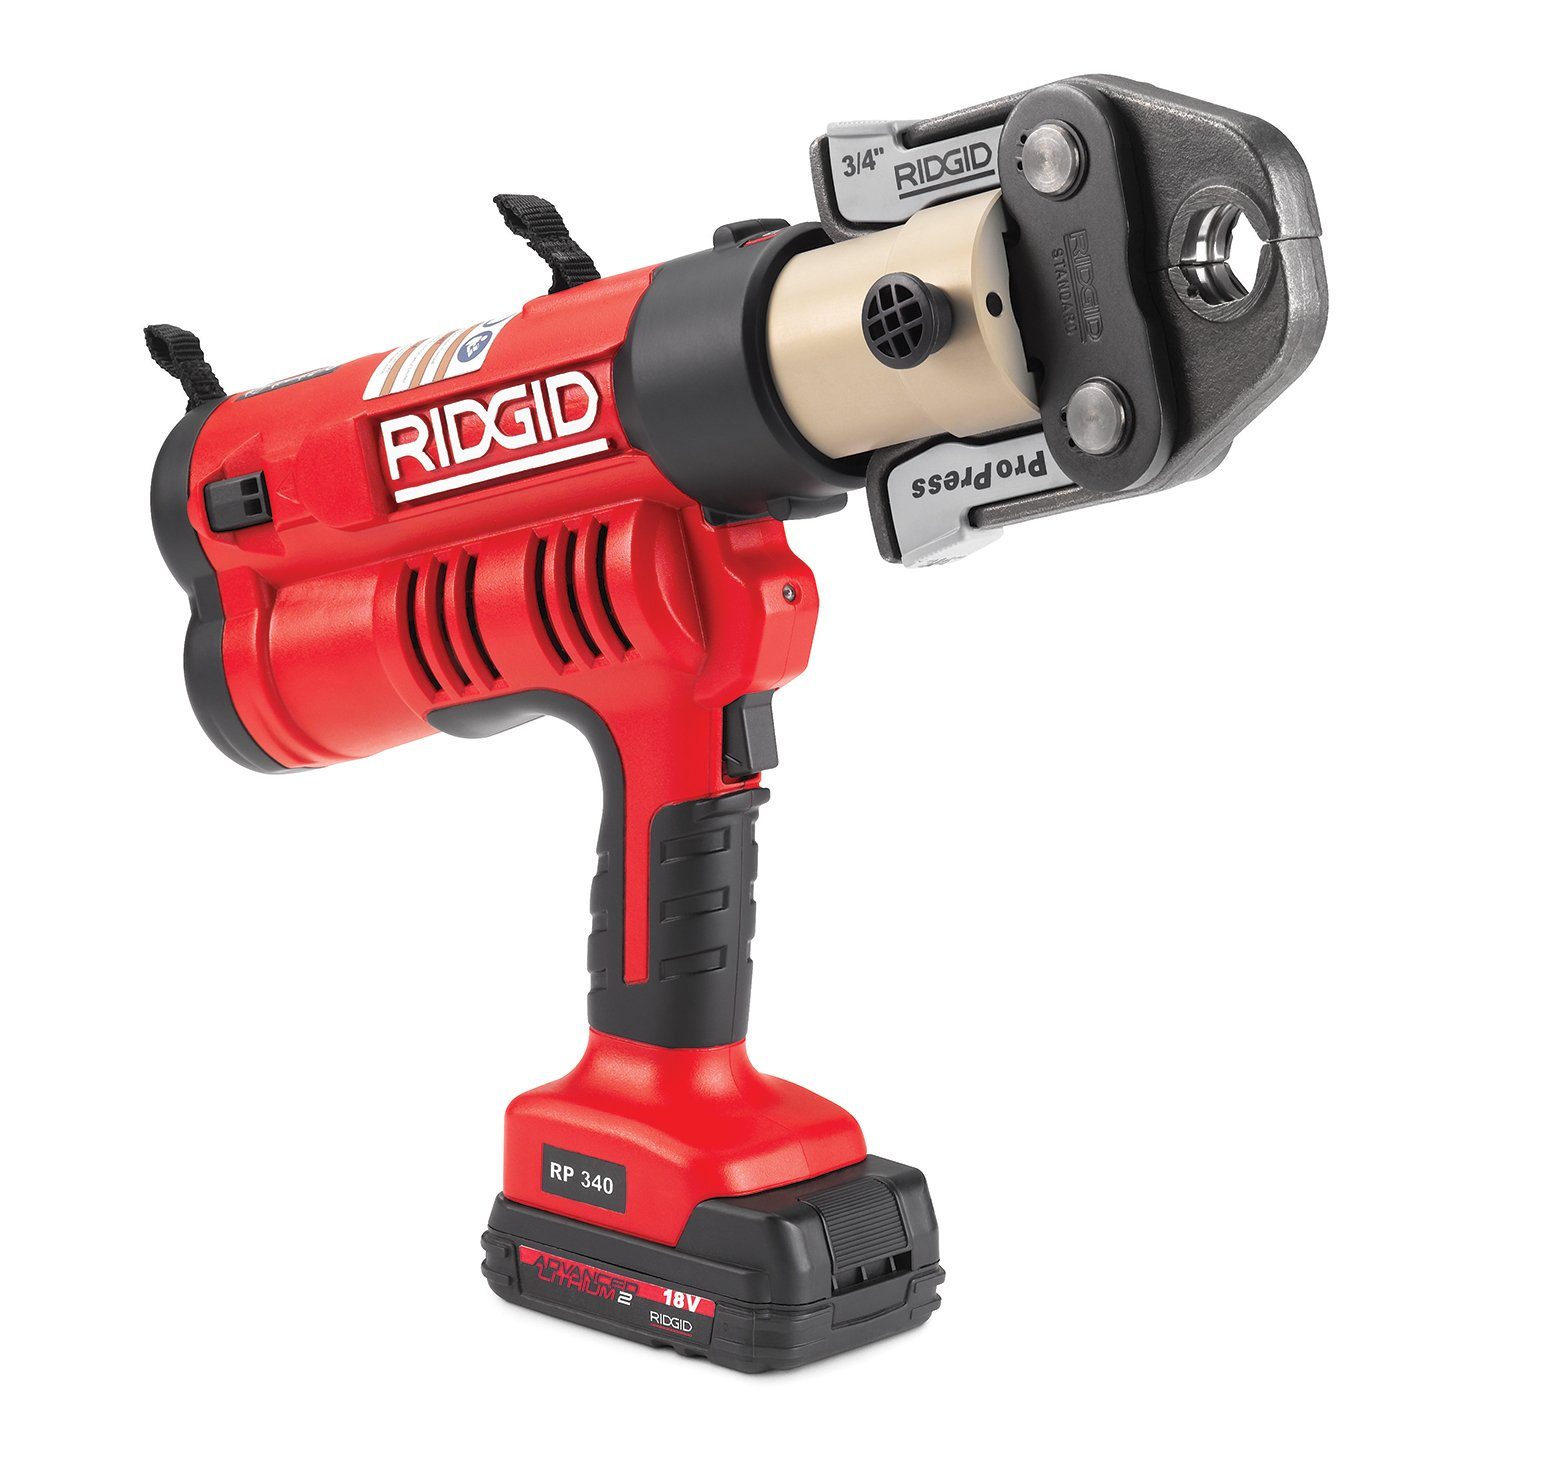 RIDGID RP 340-B Press Tool - 43348 Hydraulic Crimping Tool Jaws Not Included - ProPress Tool Jaws, PureFlow MegaPress, Standard Series Jaws and Rings Compatible (Cordless)